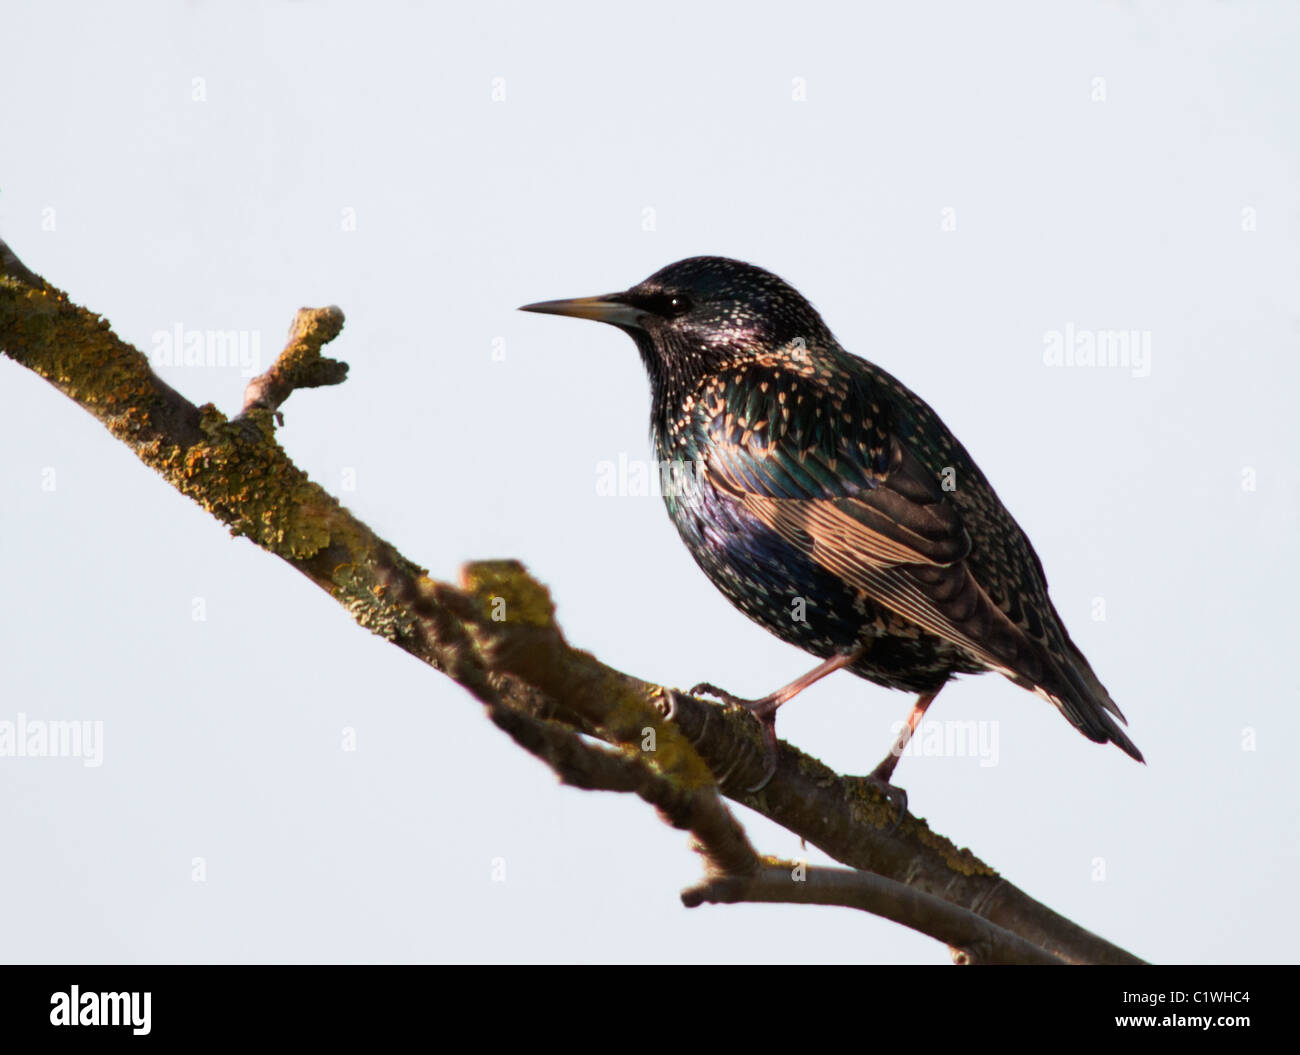 Single Starling (Sturnus vulgaris) perched with the light showing it's iridescent spring colours to good effect. - Stock Image